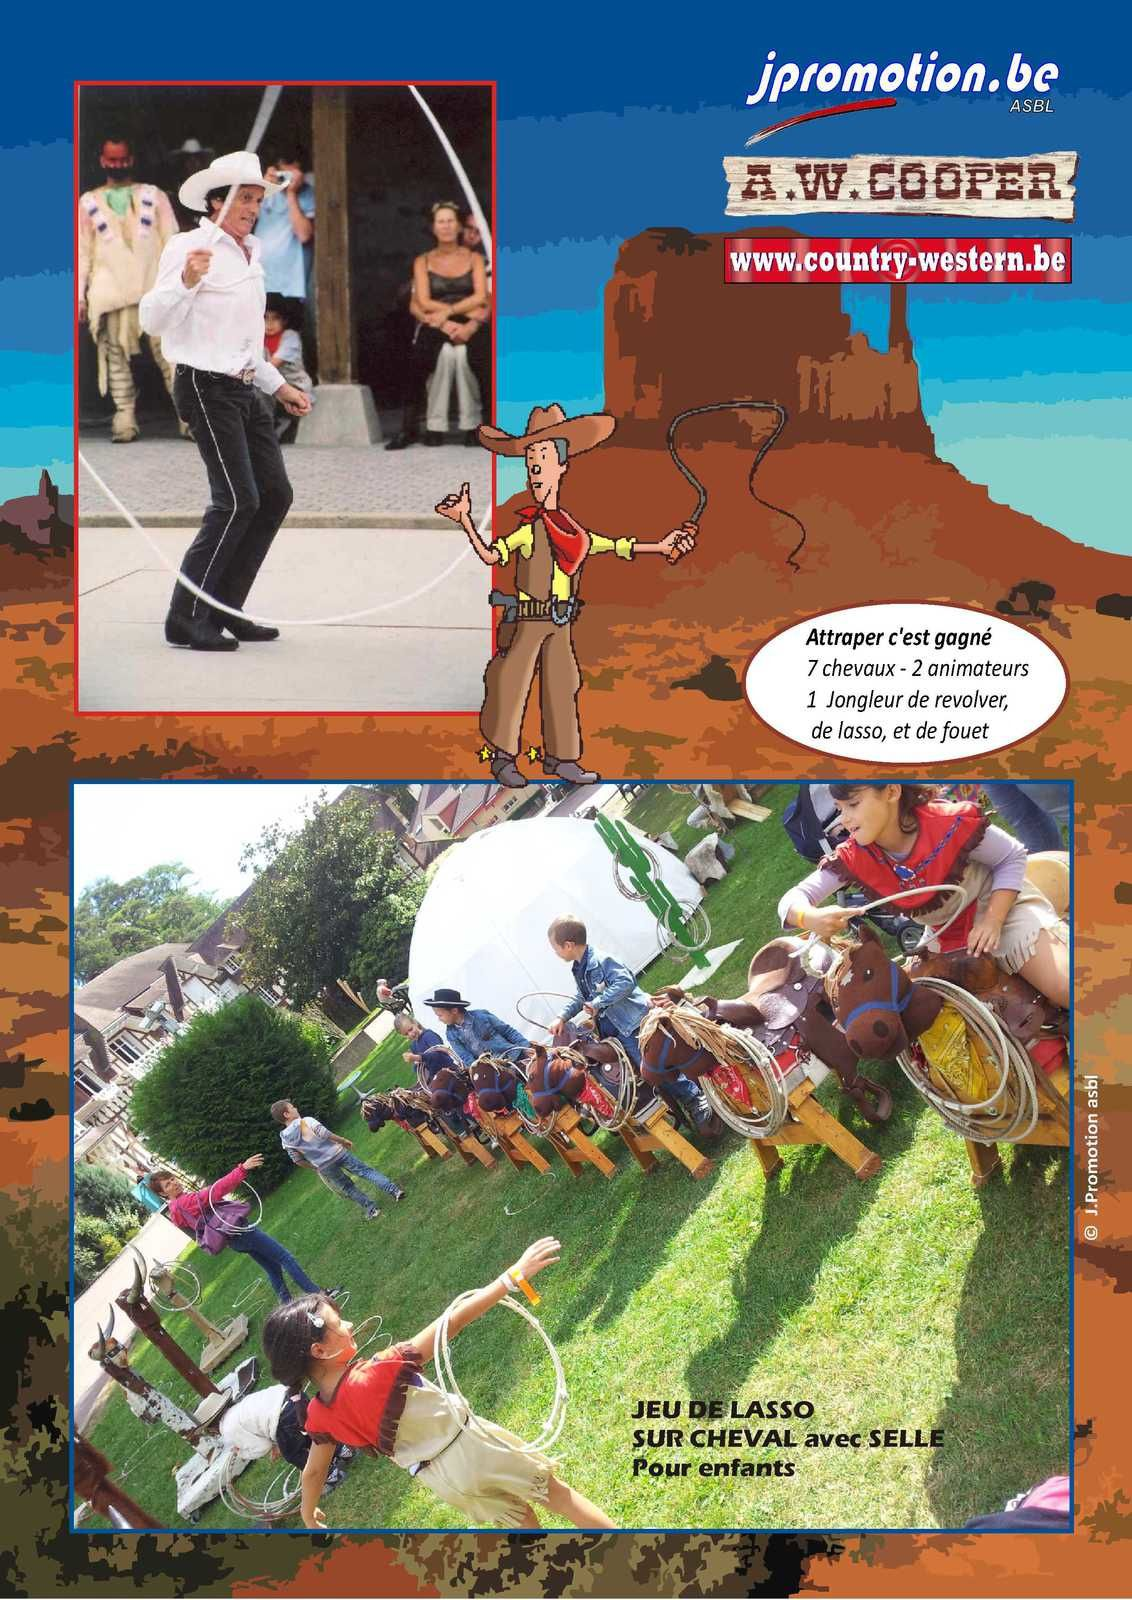 Animation Western: Horse shoes, photo call, Torro mecanique, façades western, pueblo...